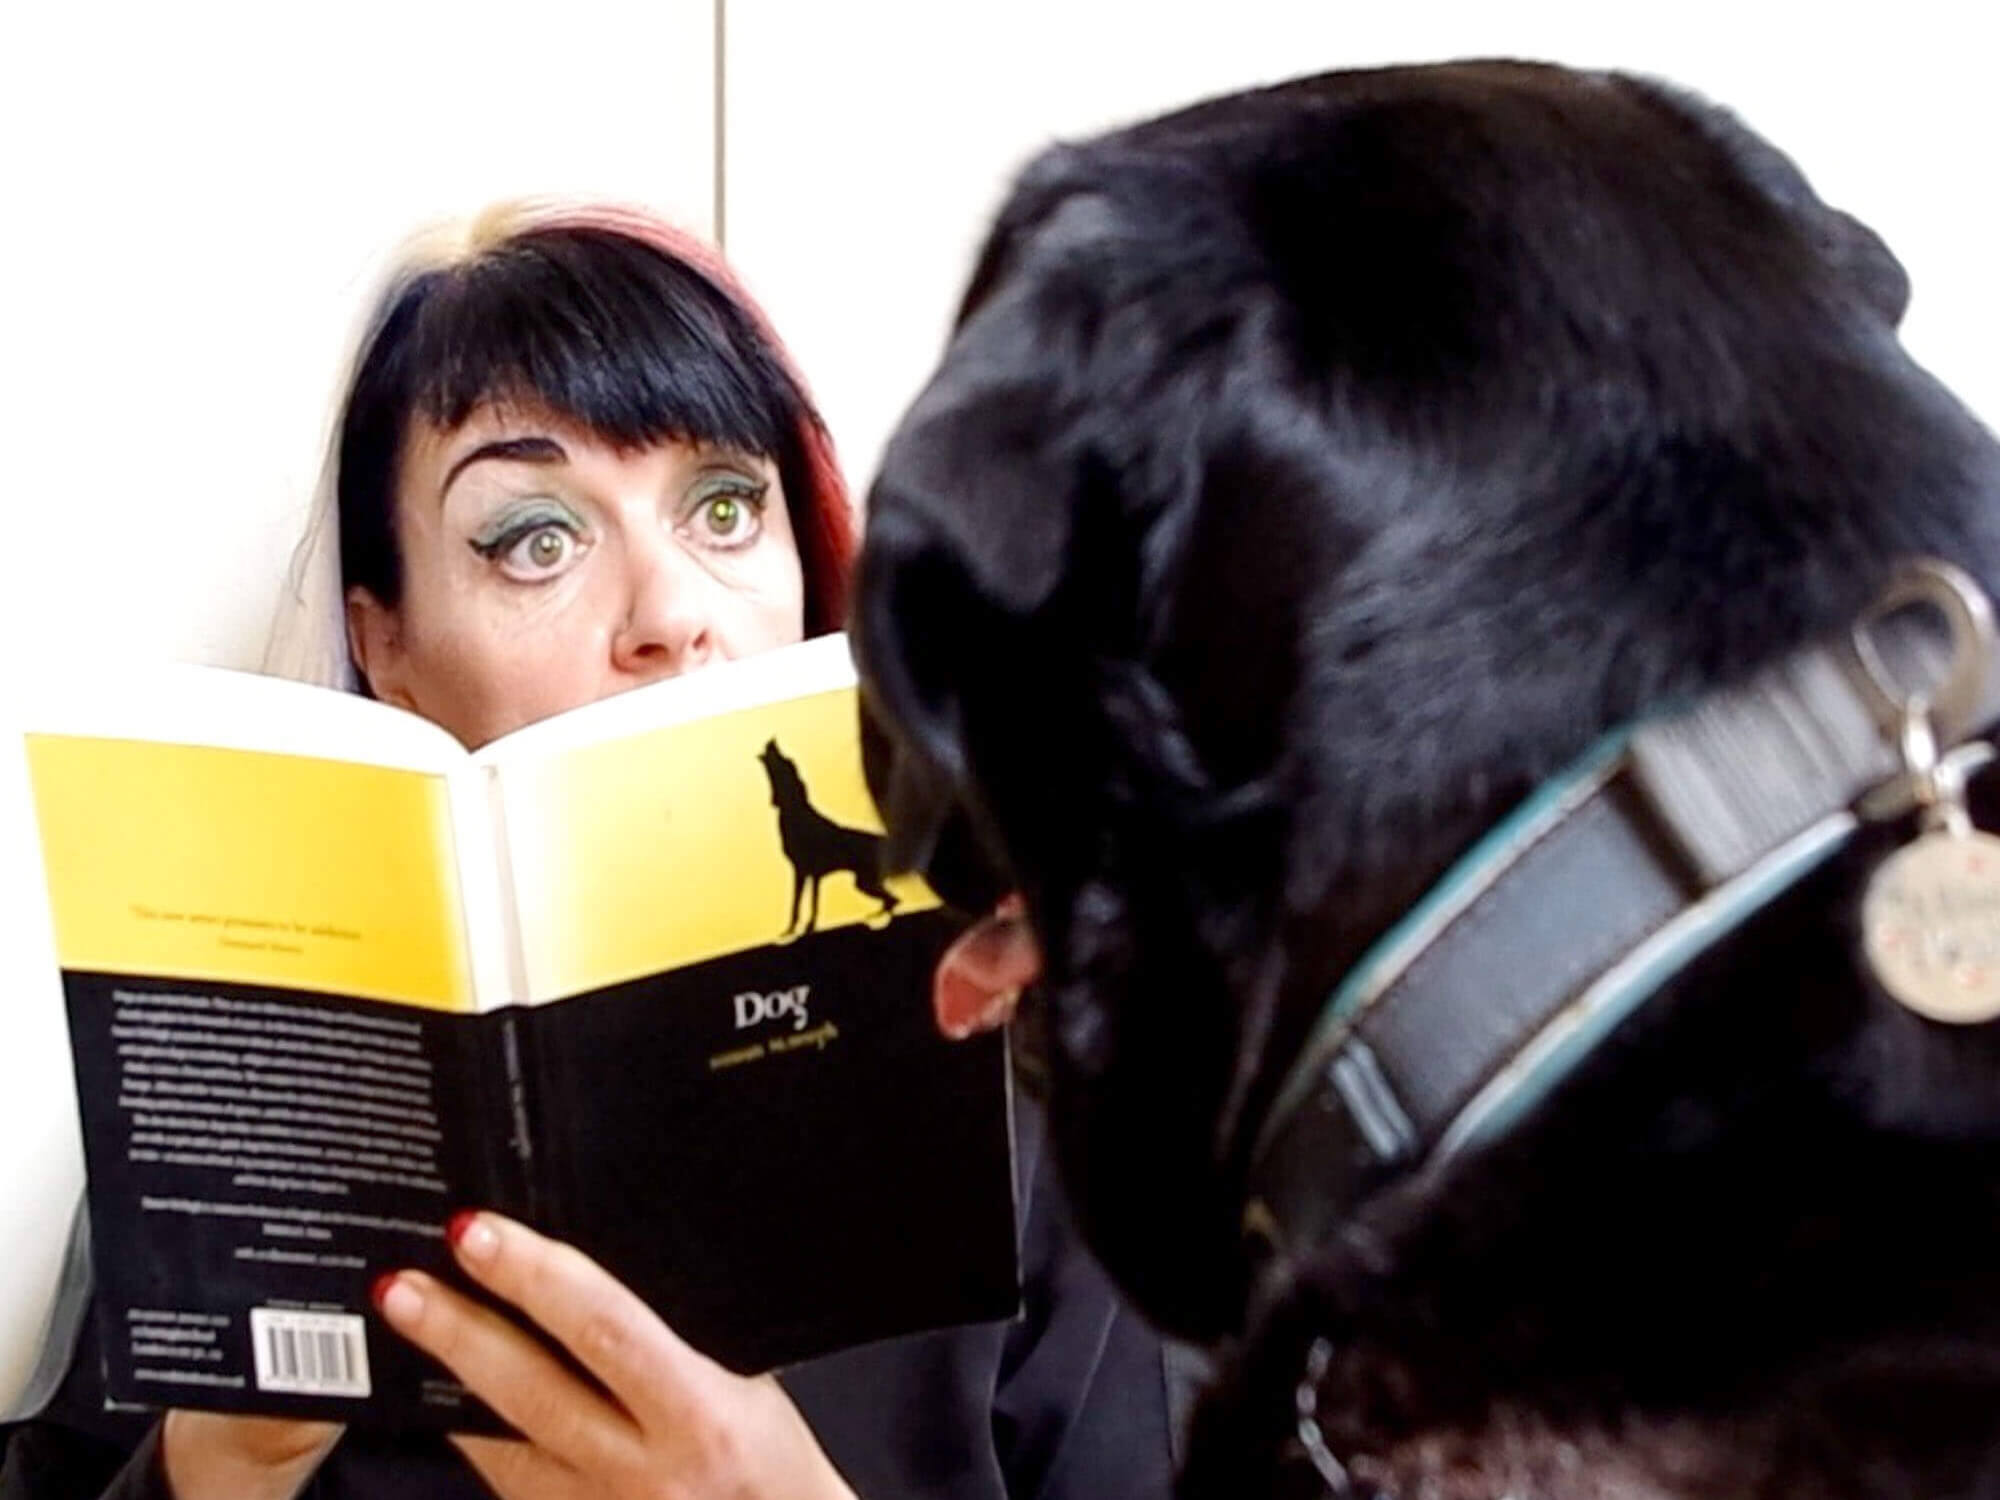 Ang Bartram reading book about dog theory to Oscar the dog